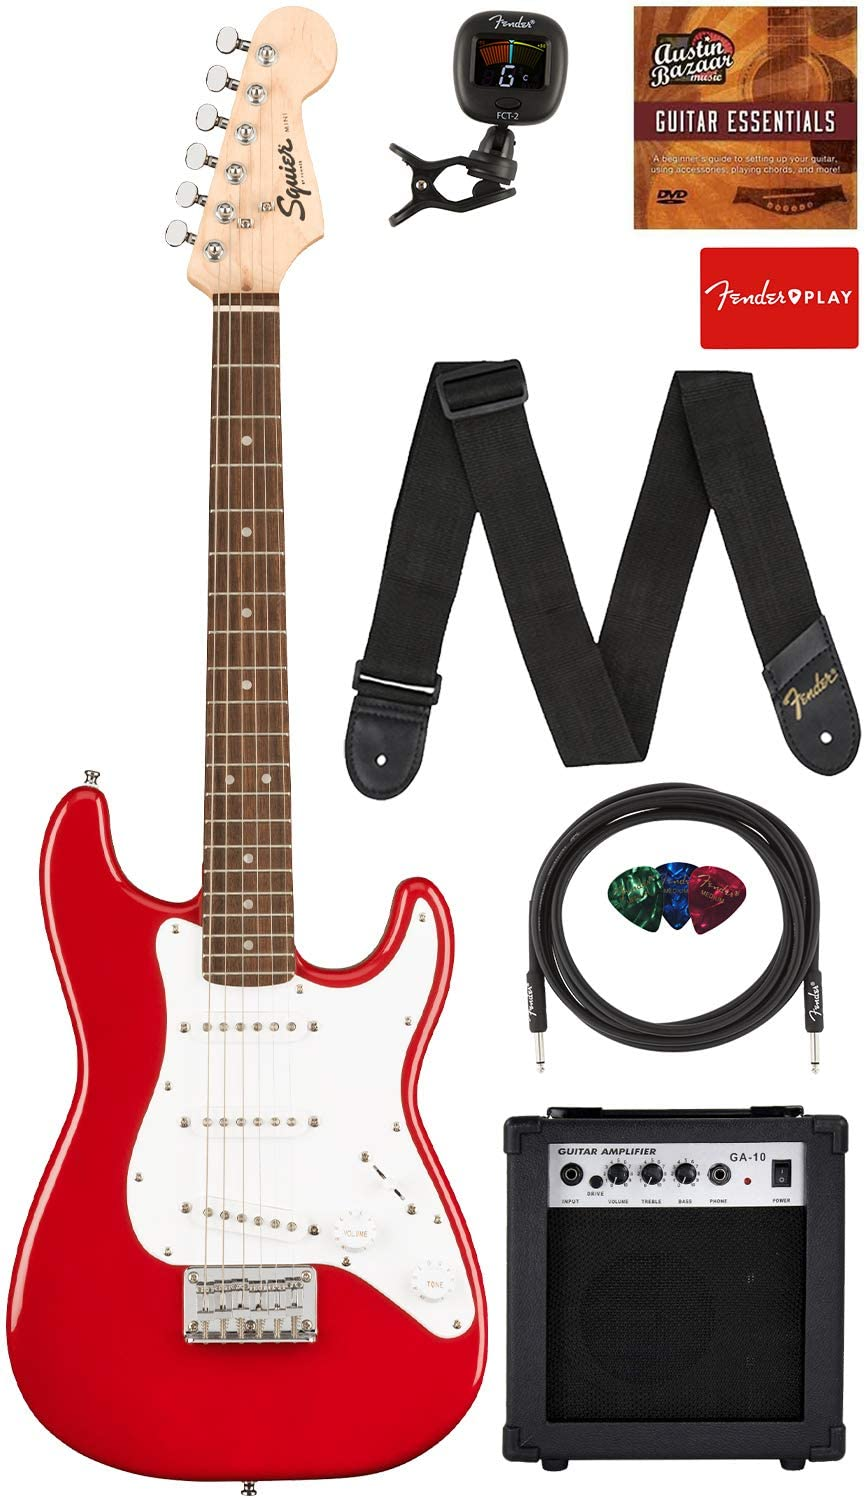 Fender Squier 3/4 Size Kids Mini Stratocaster Electric Guitar Learn-to-Play Bundle with Amp, Cable, Tuner, Strap, Picks, Fender Play Online Lessons, and Austin Bazaar Instructional DVD - Dakota Red